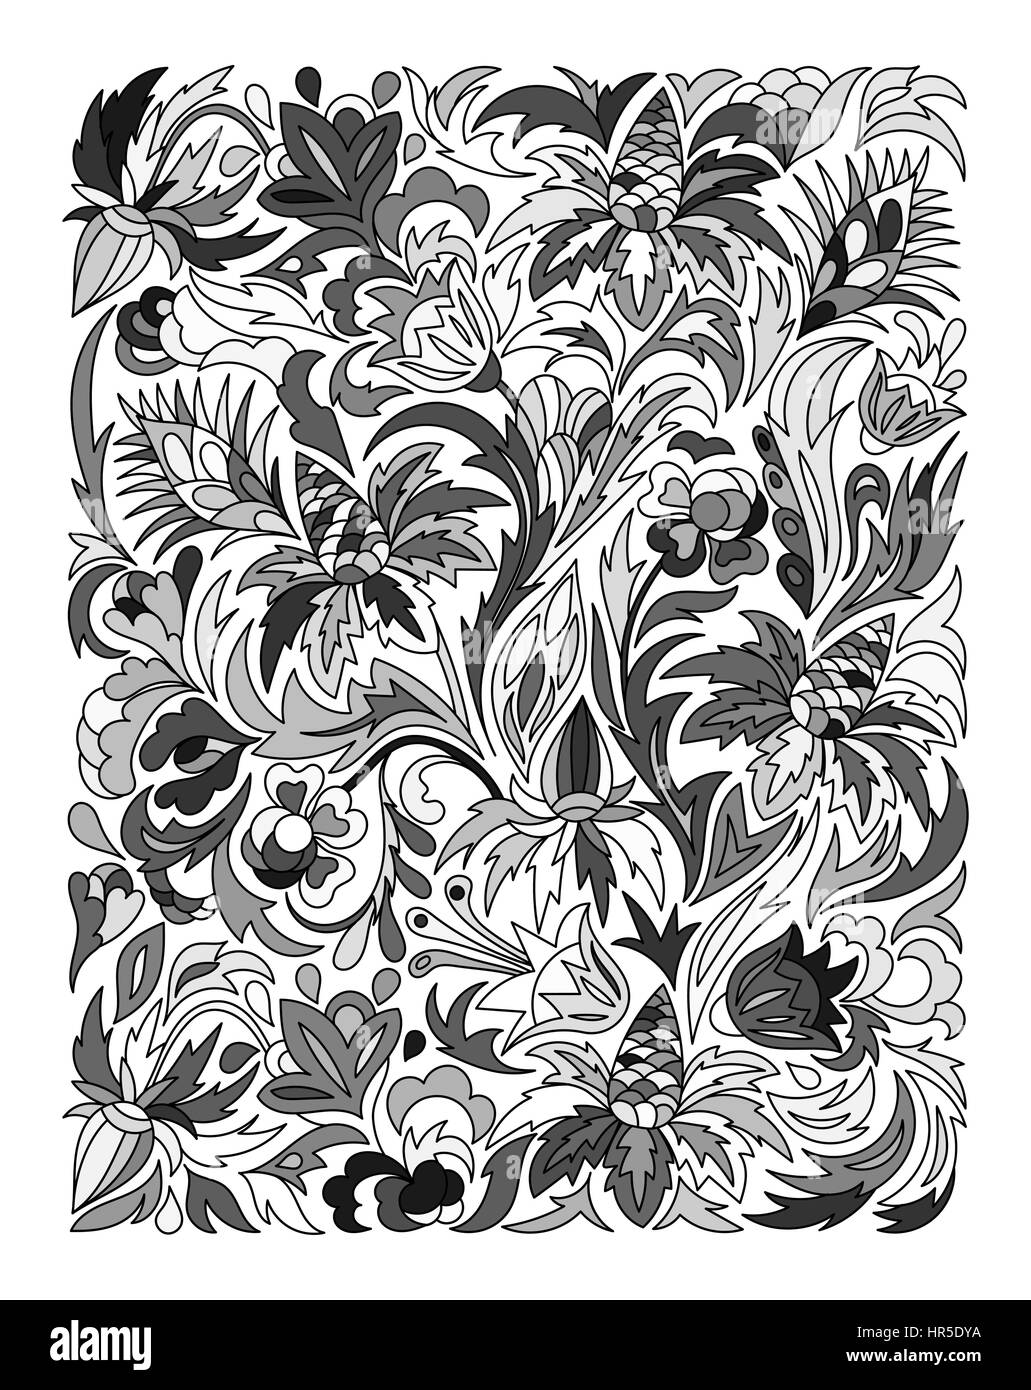 Ethnic colored floral zentangle, doodle background pattern